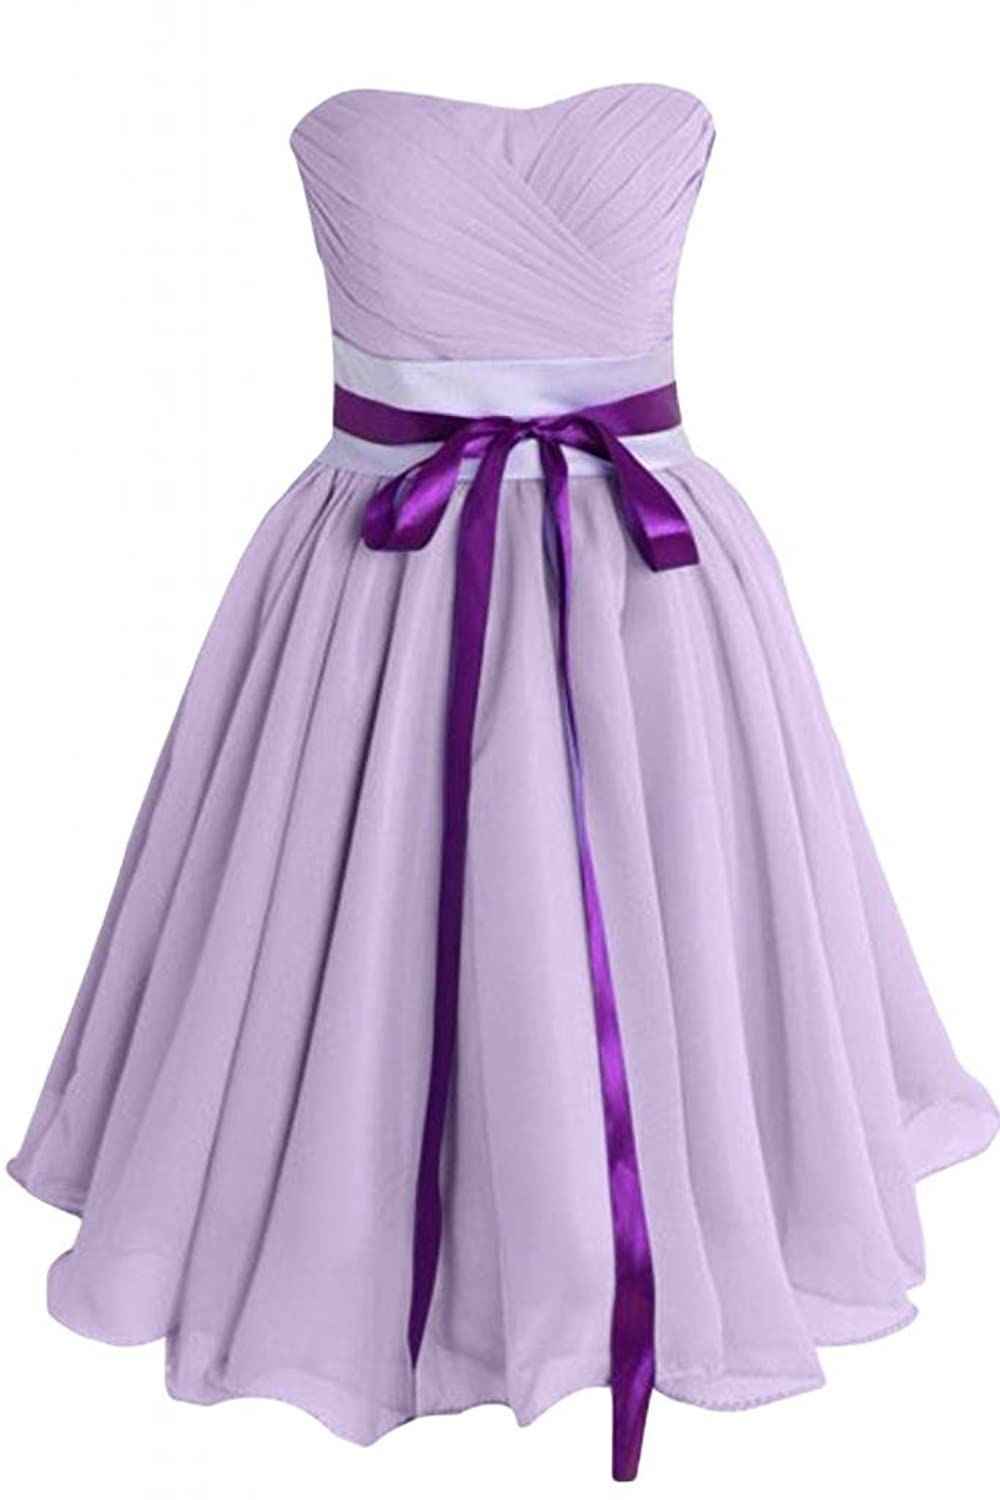 Sunvary Chic Chiffon Short A-Line Prom Dress Party Dress Cocktail Dress